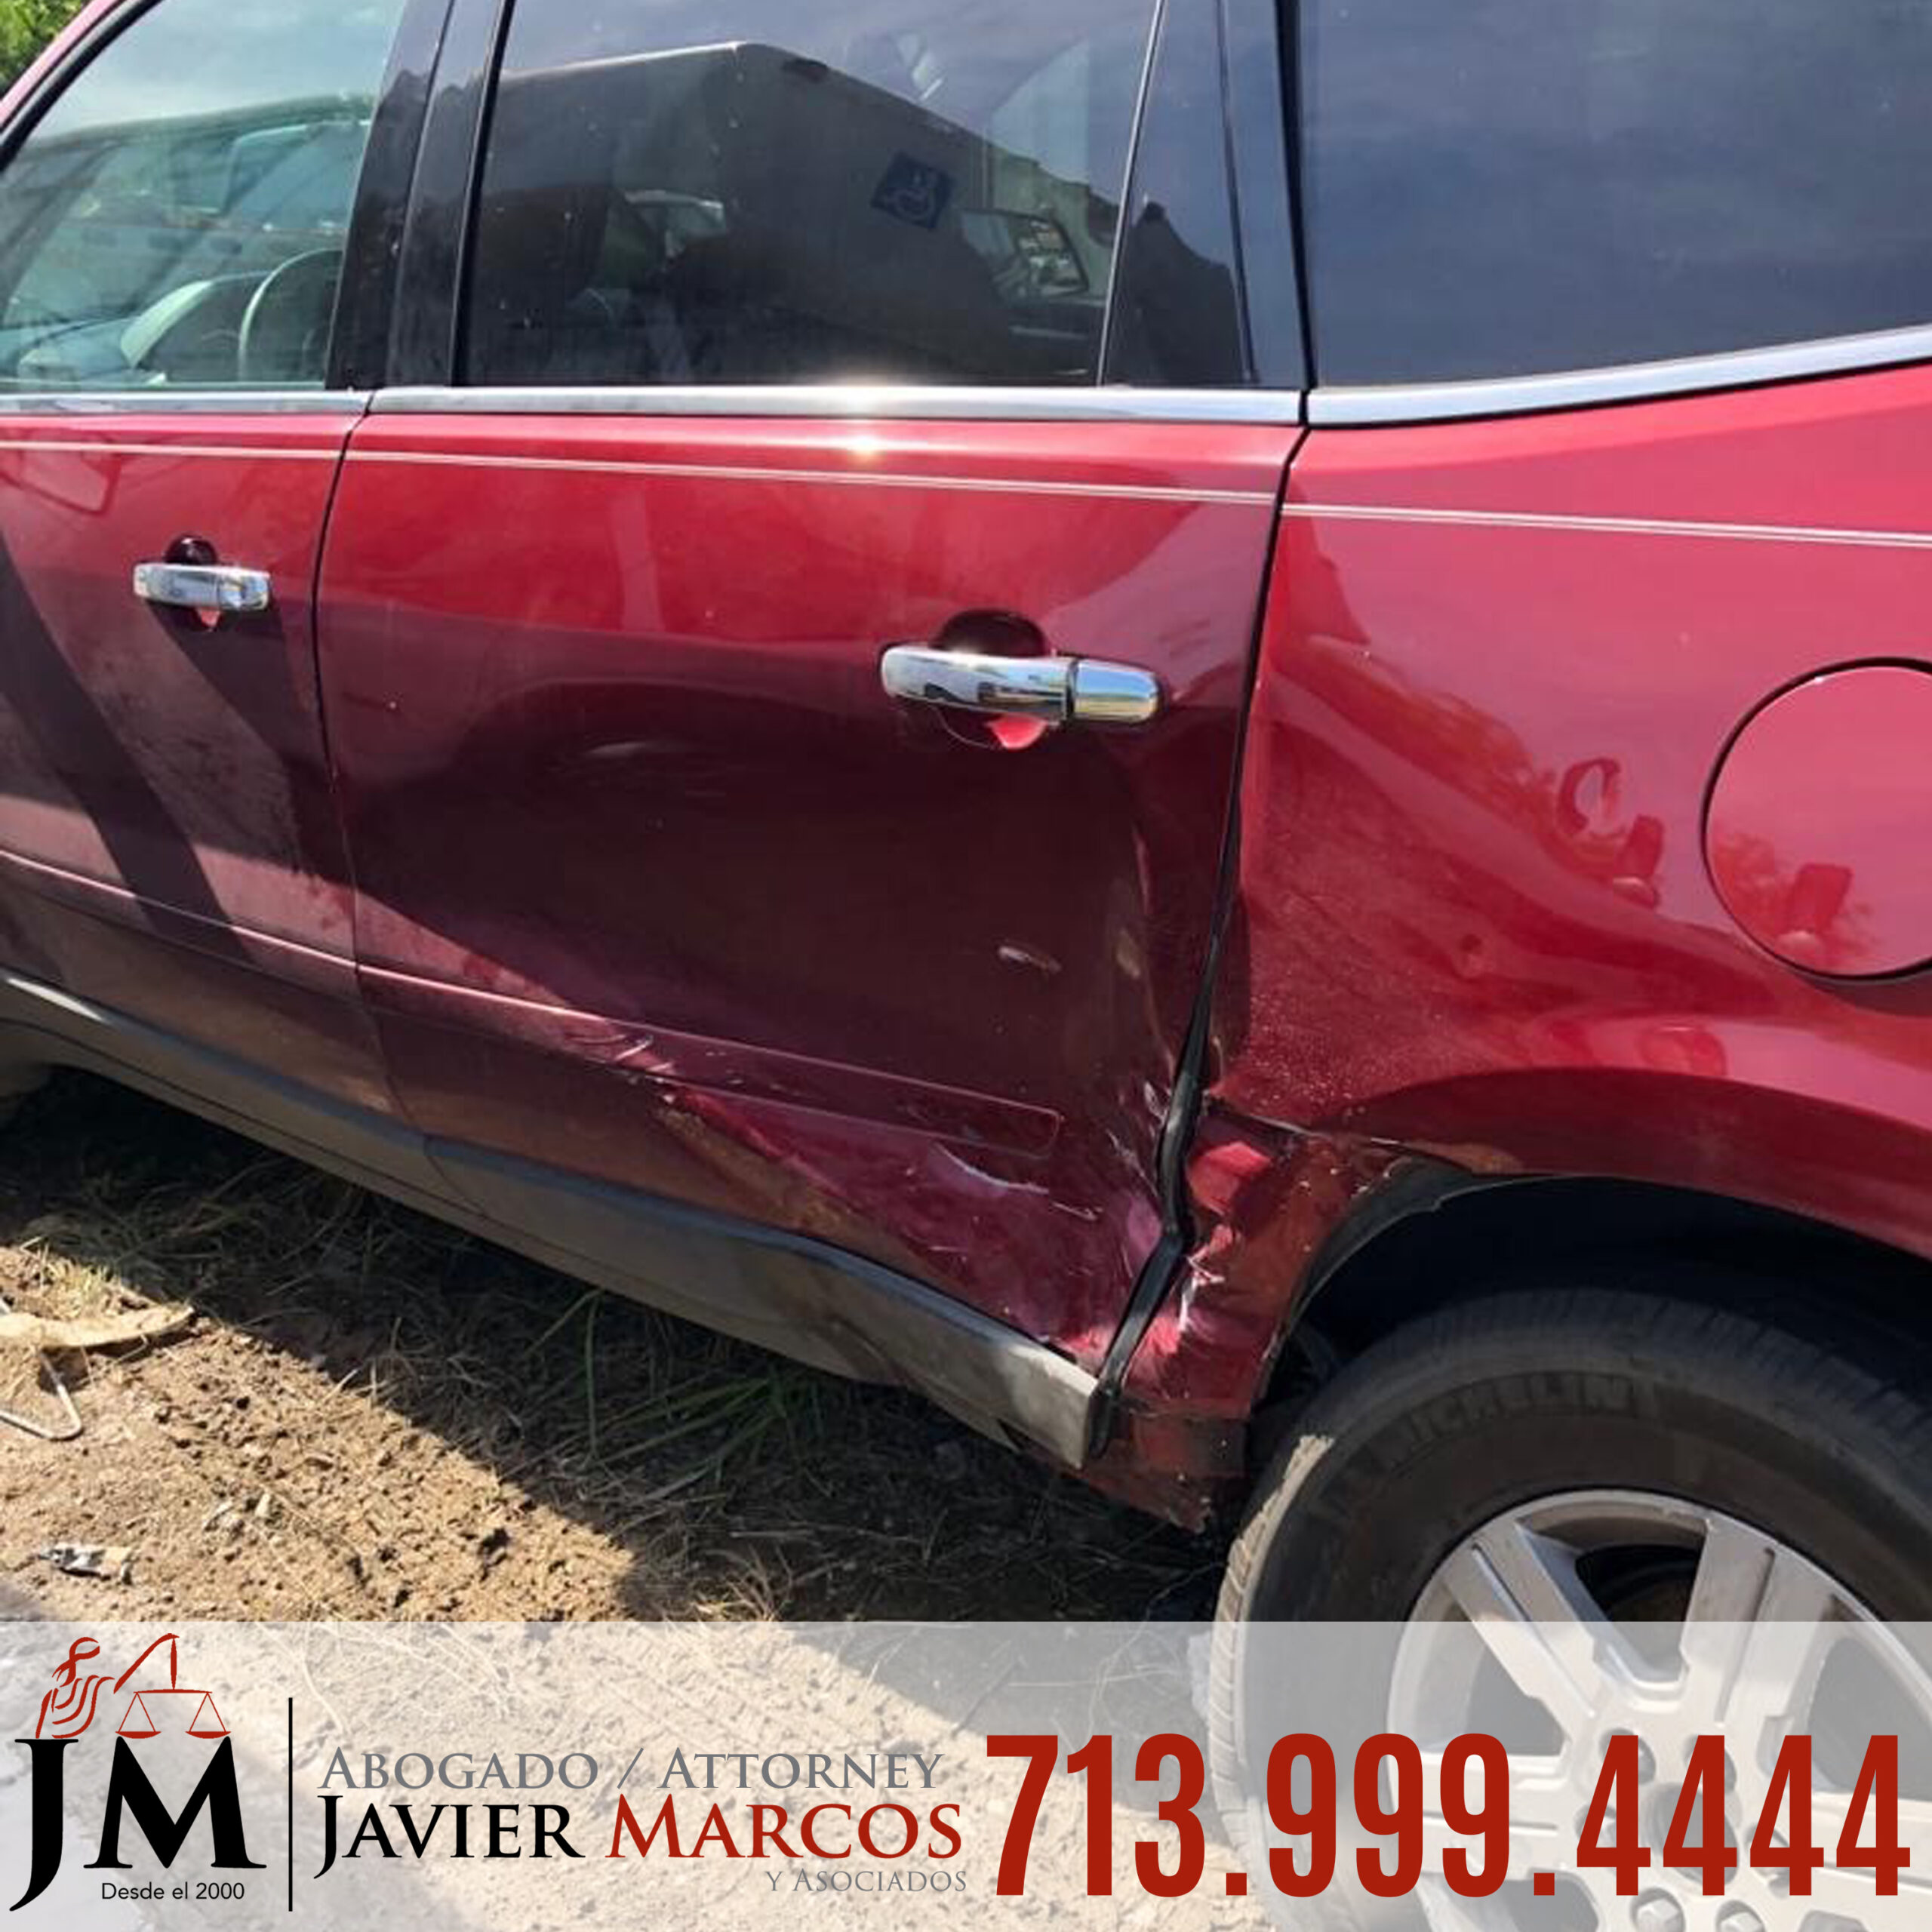 Uber accident lawyer | Attorney Javier Marcos | 713.999.4444